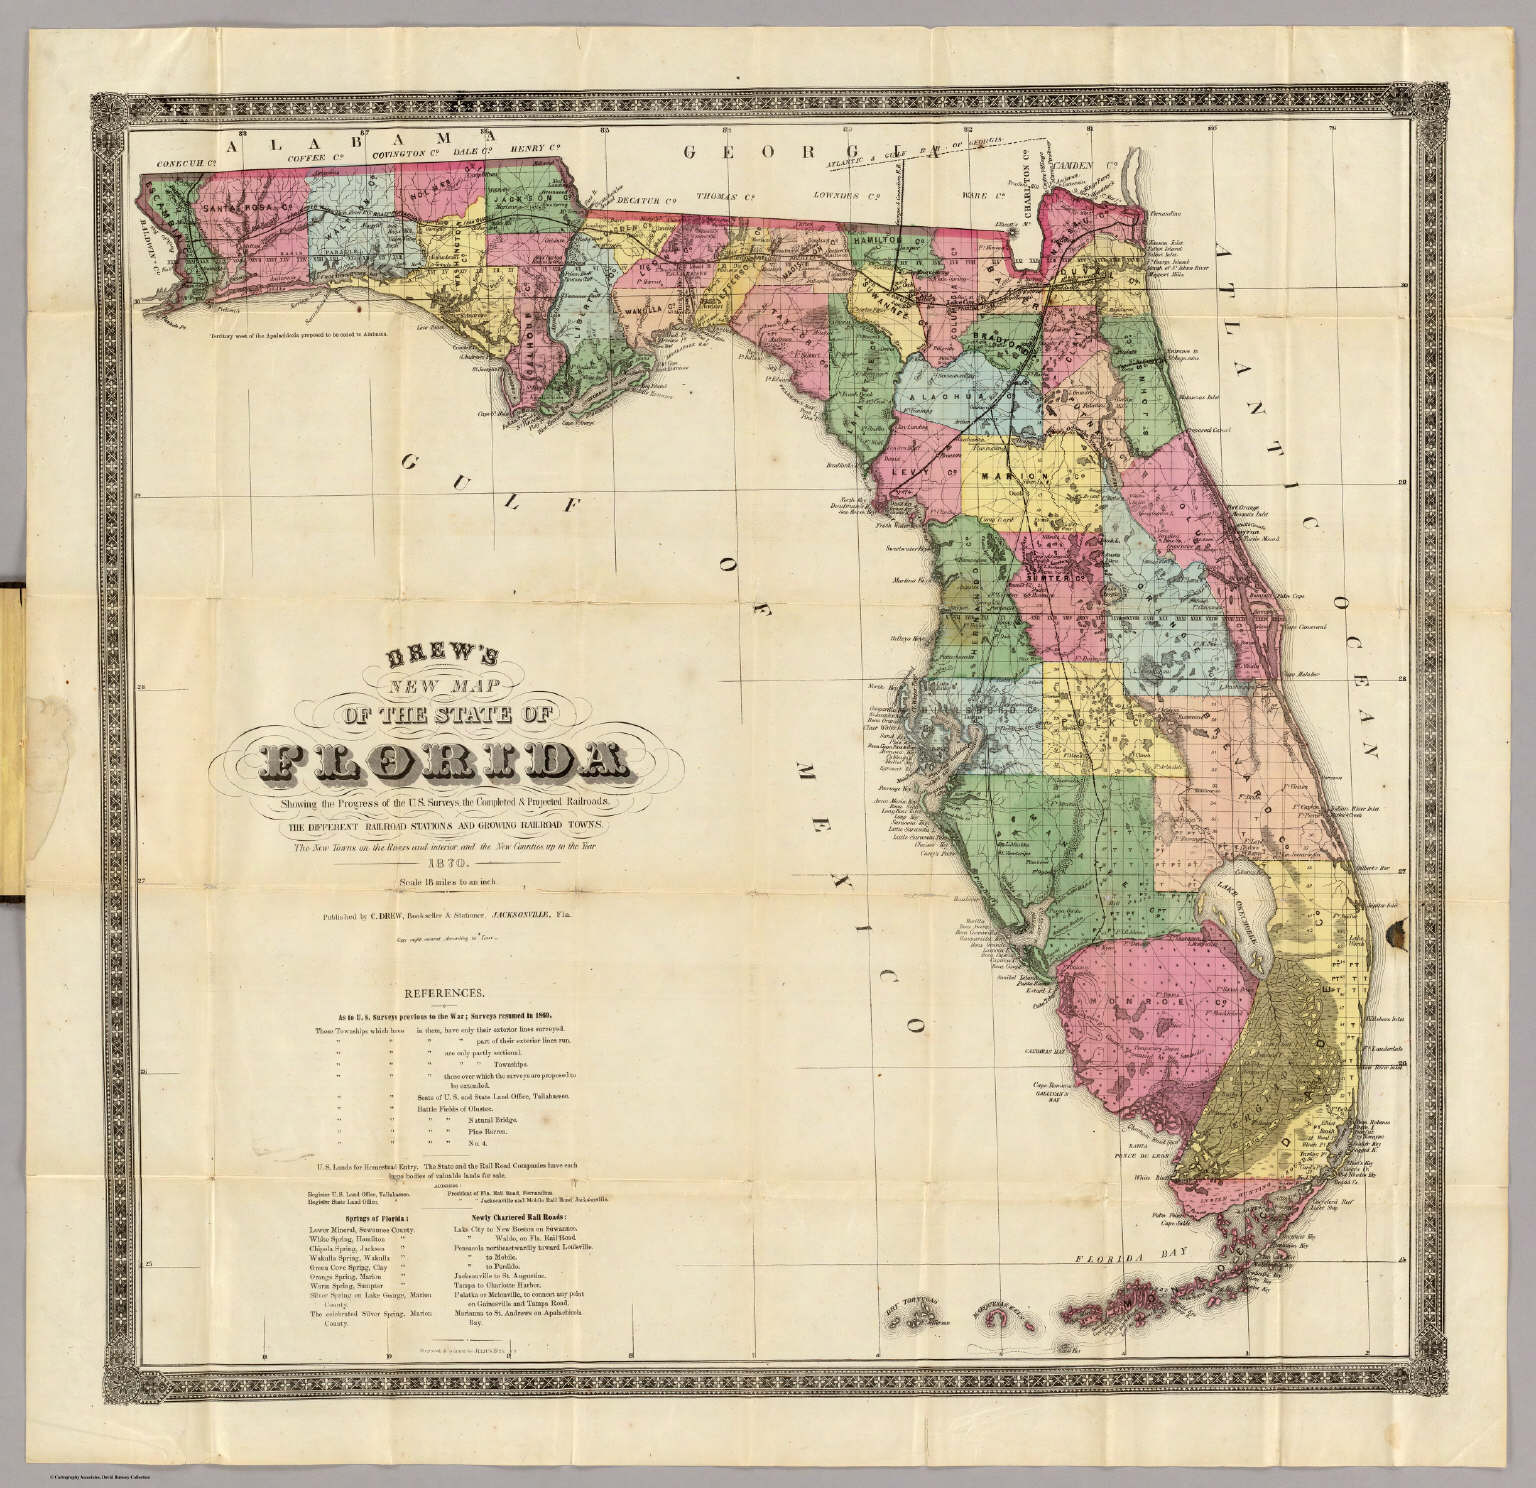 Drew\'s New Map Of The State Of Florida. - David Rumsey Historical ...